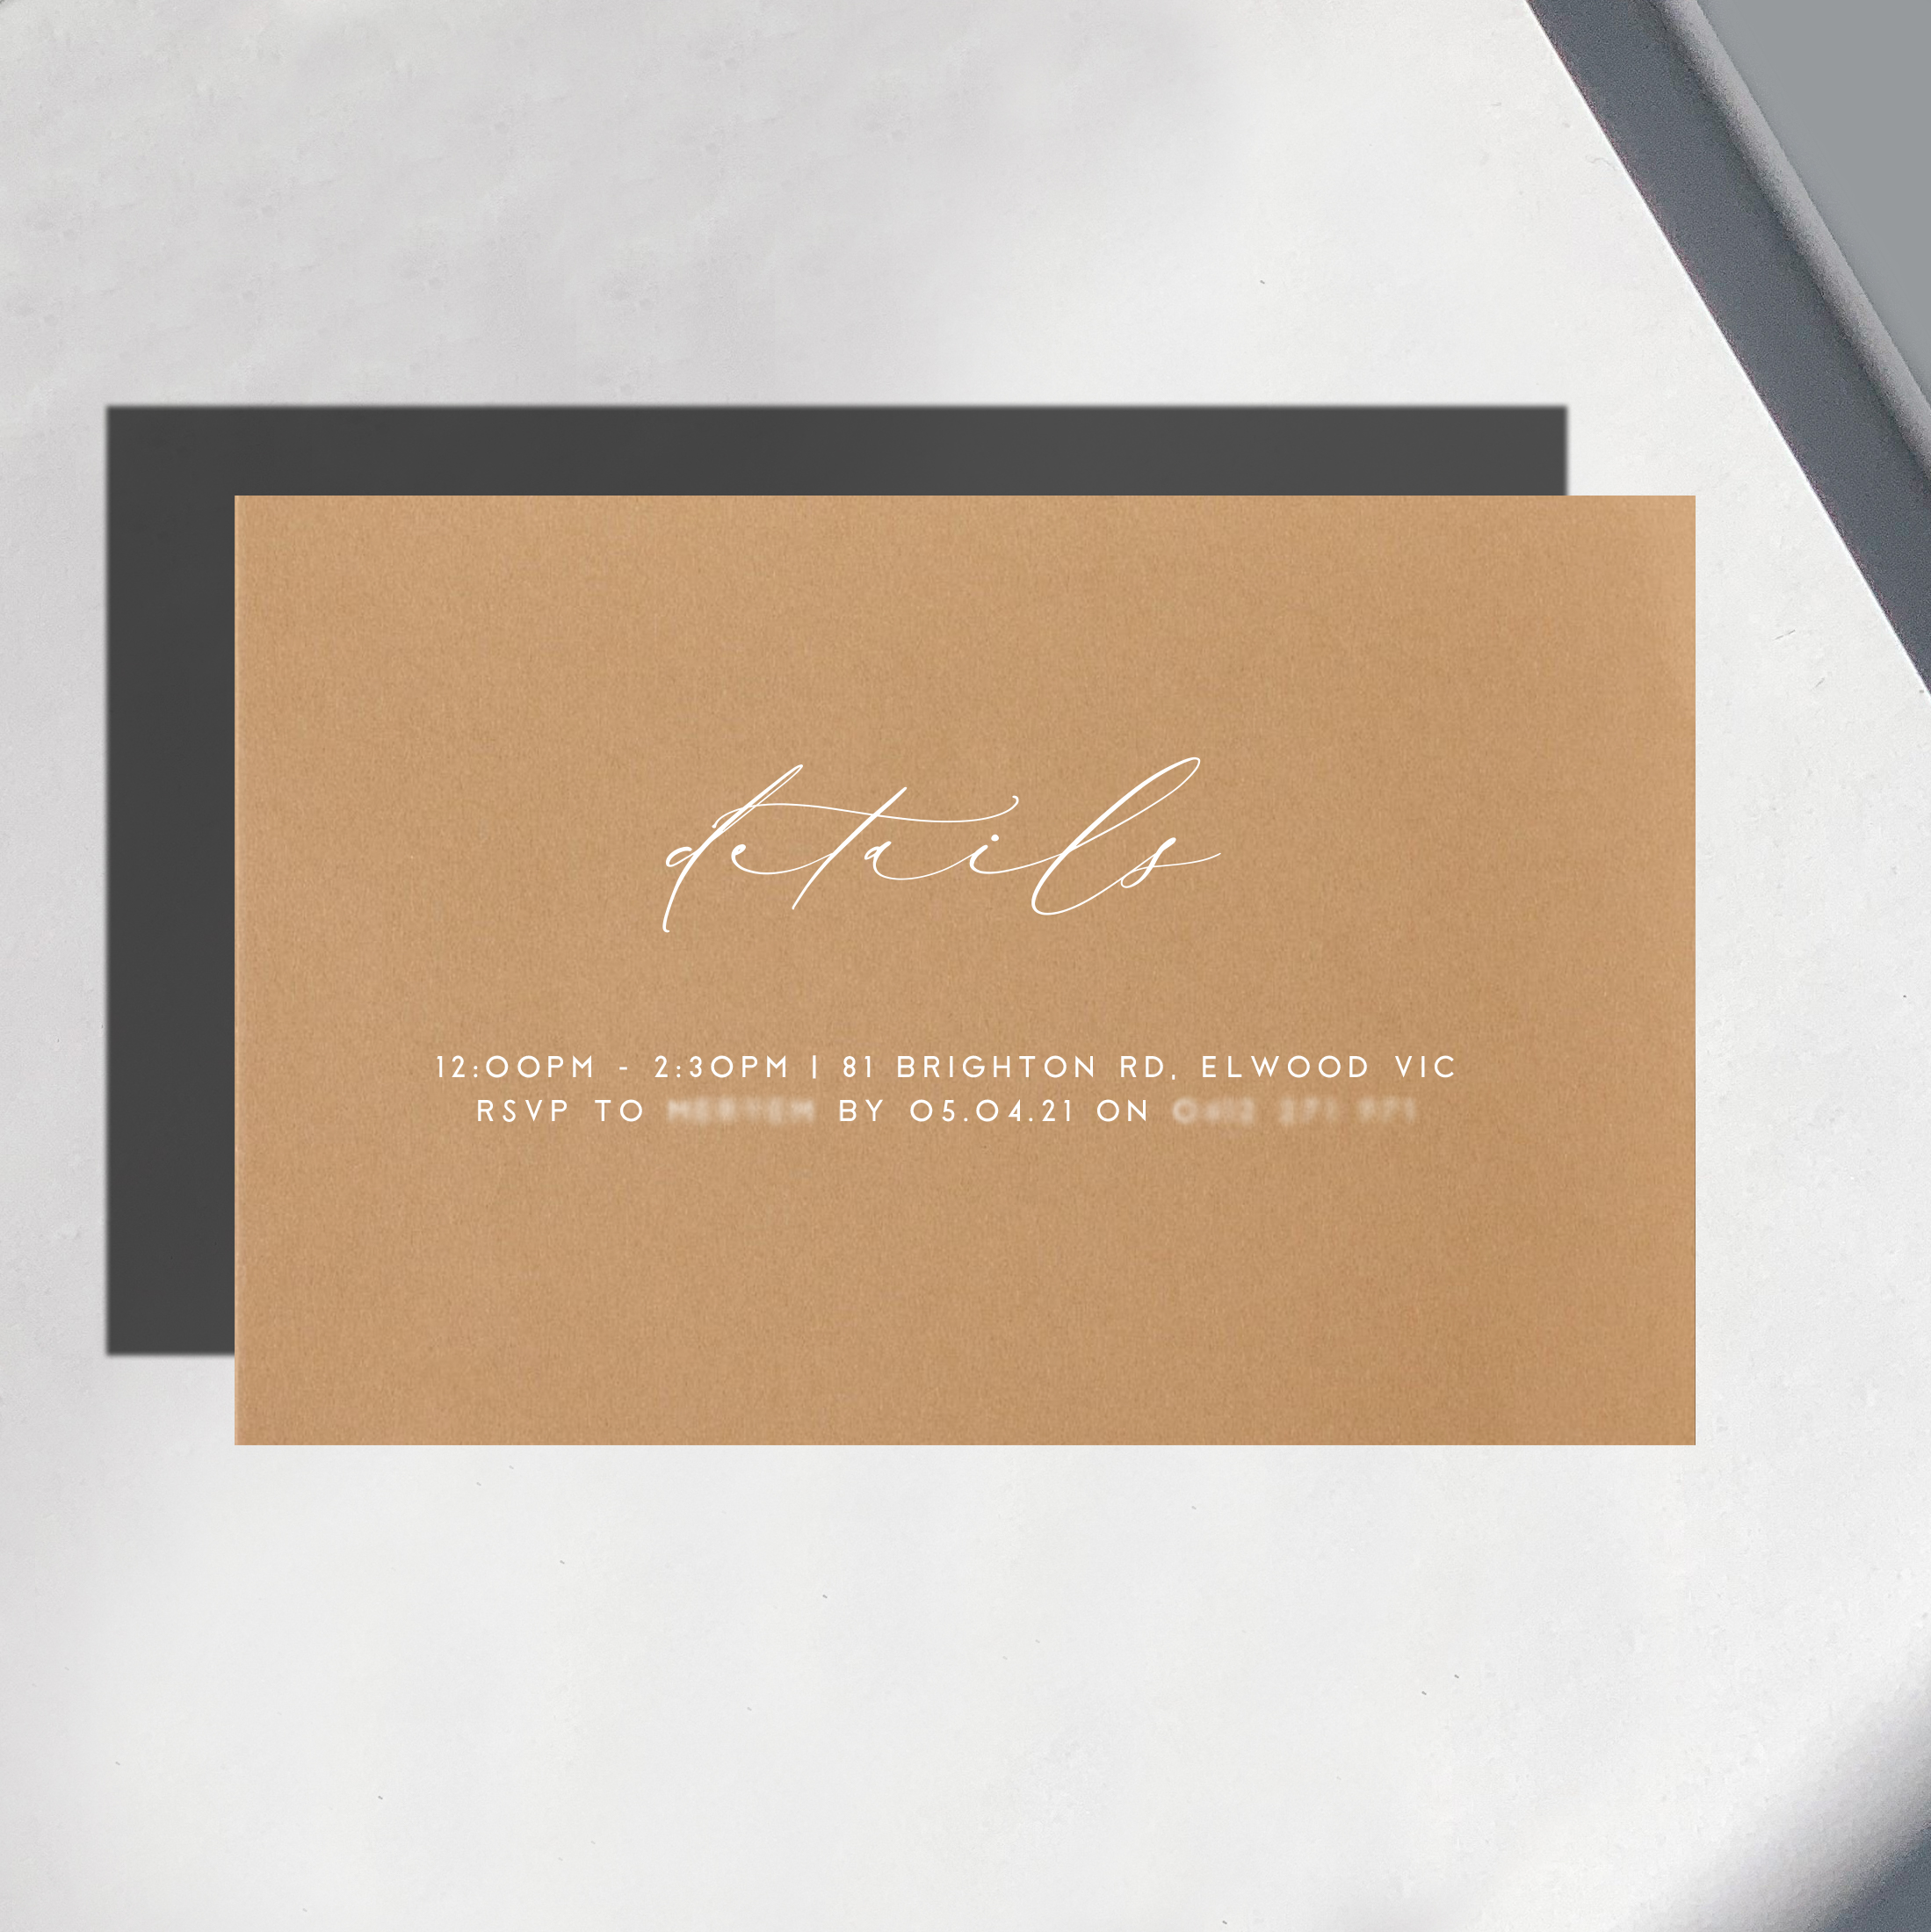 X Oia Sunset Details card